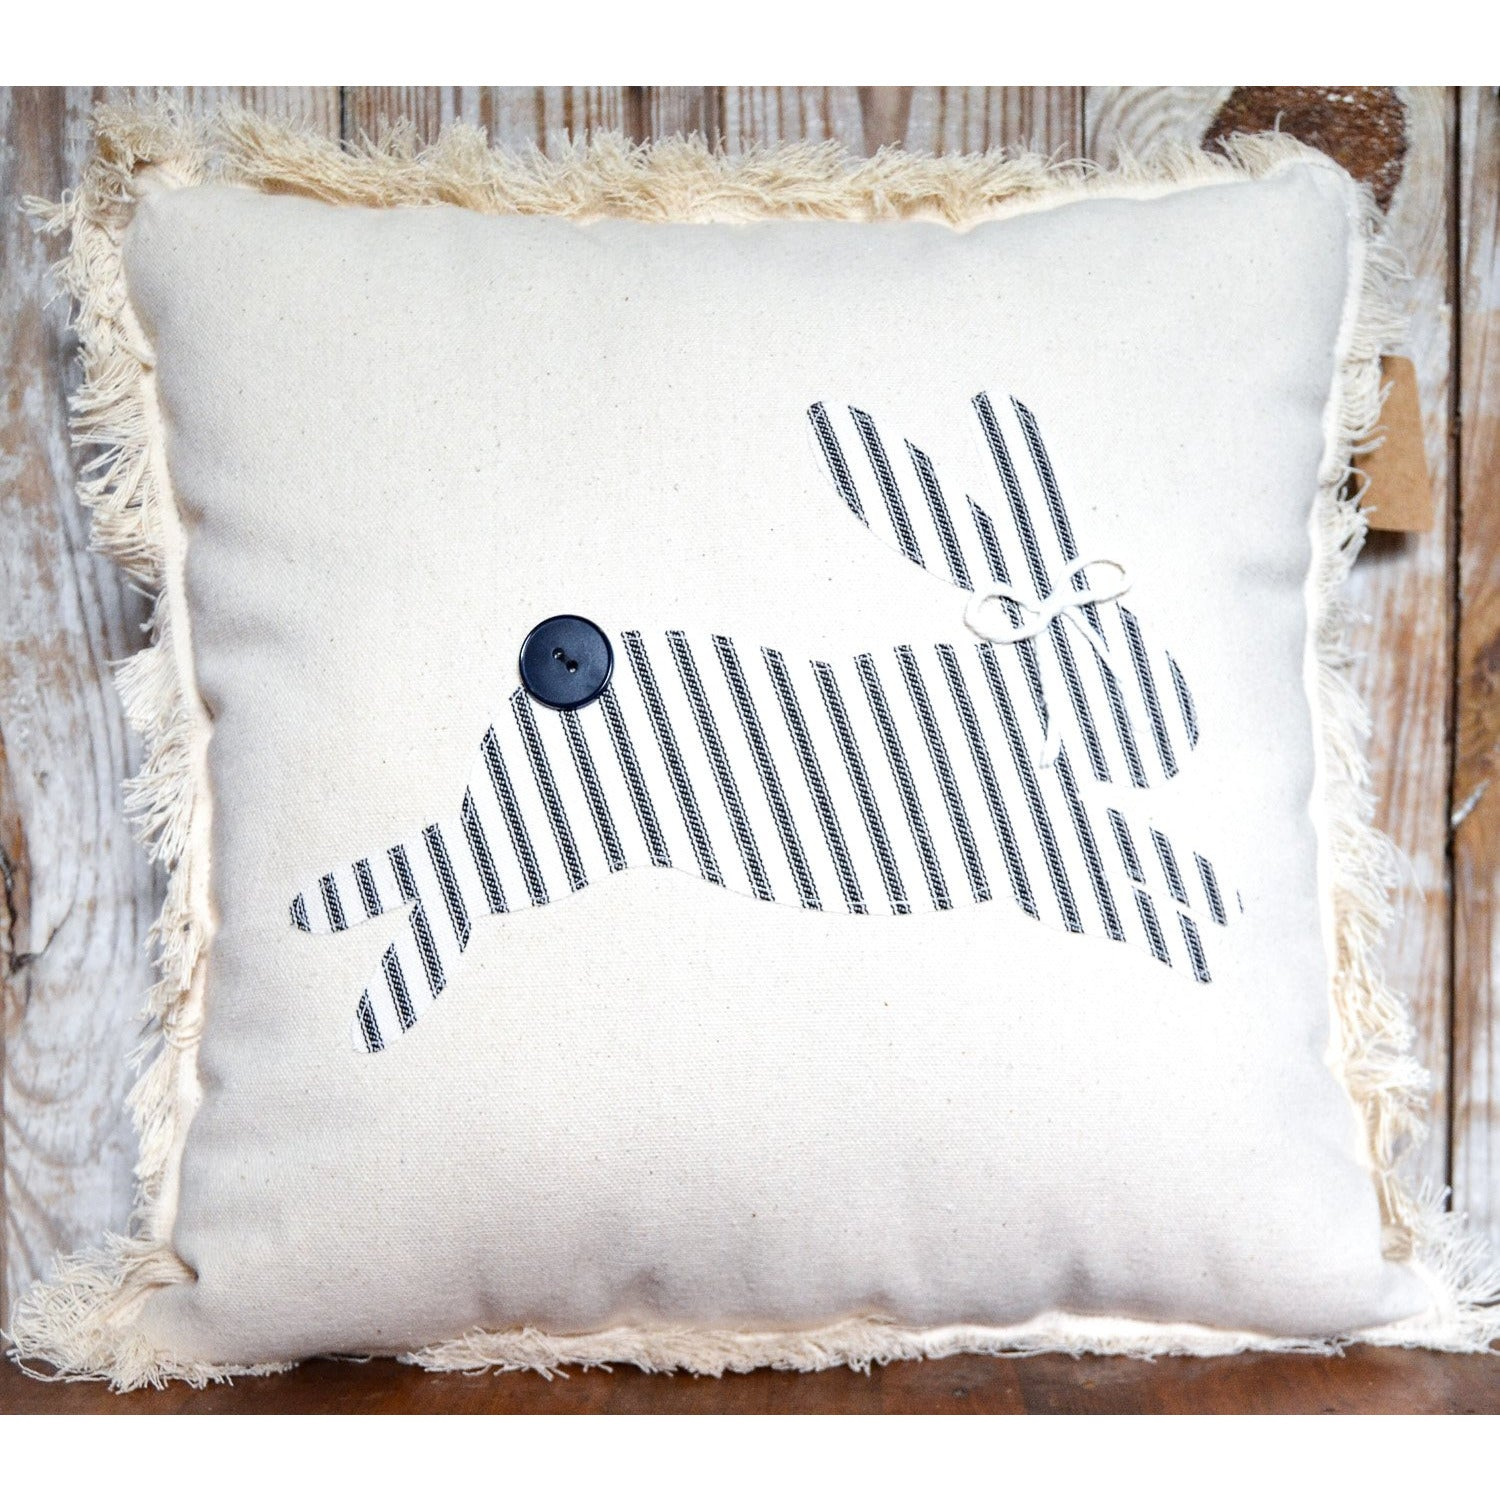 Black Ticking Bunny Pillow